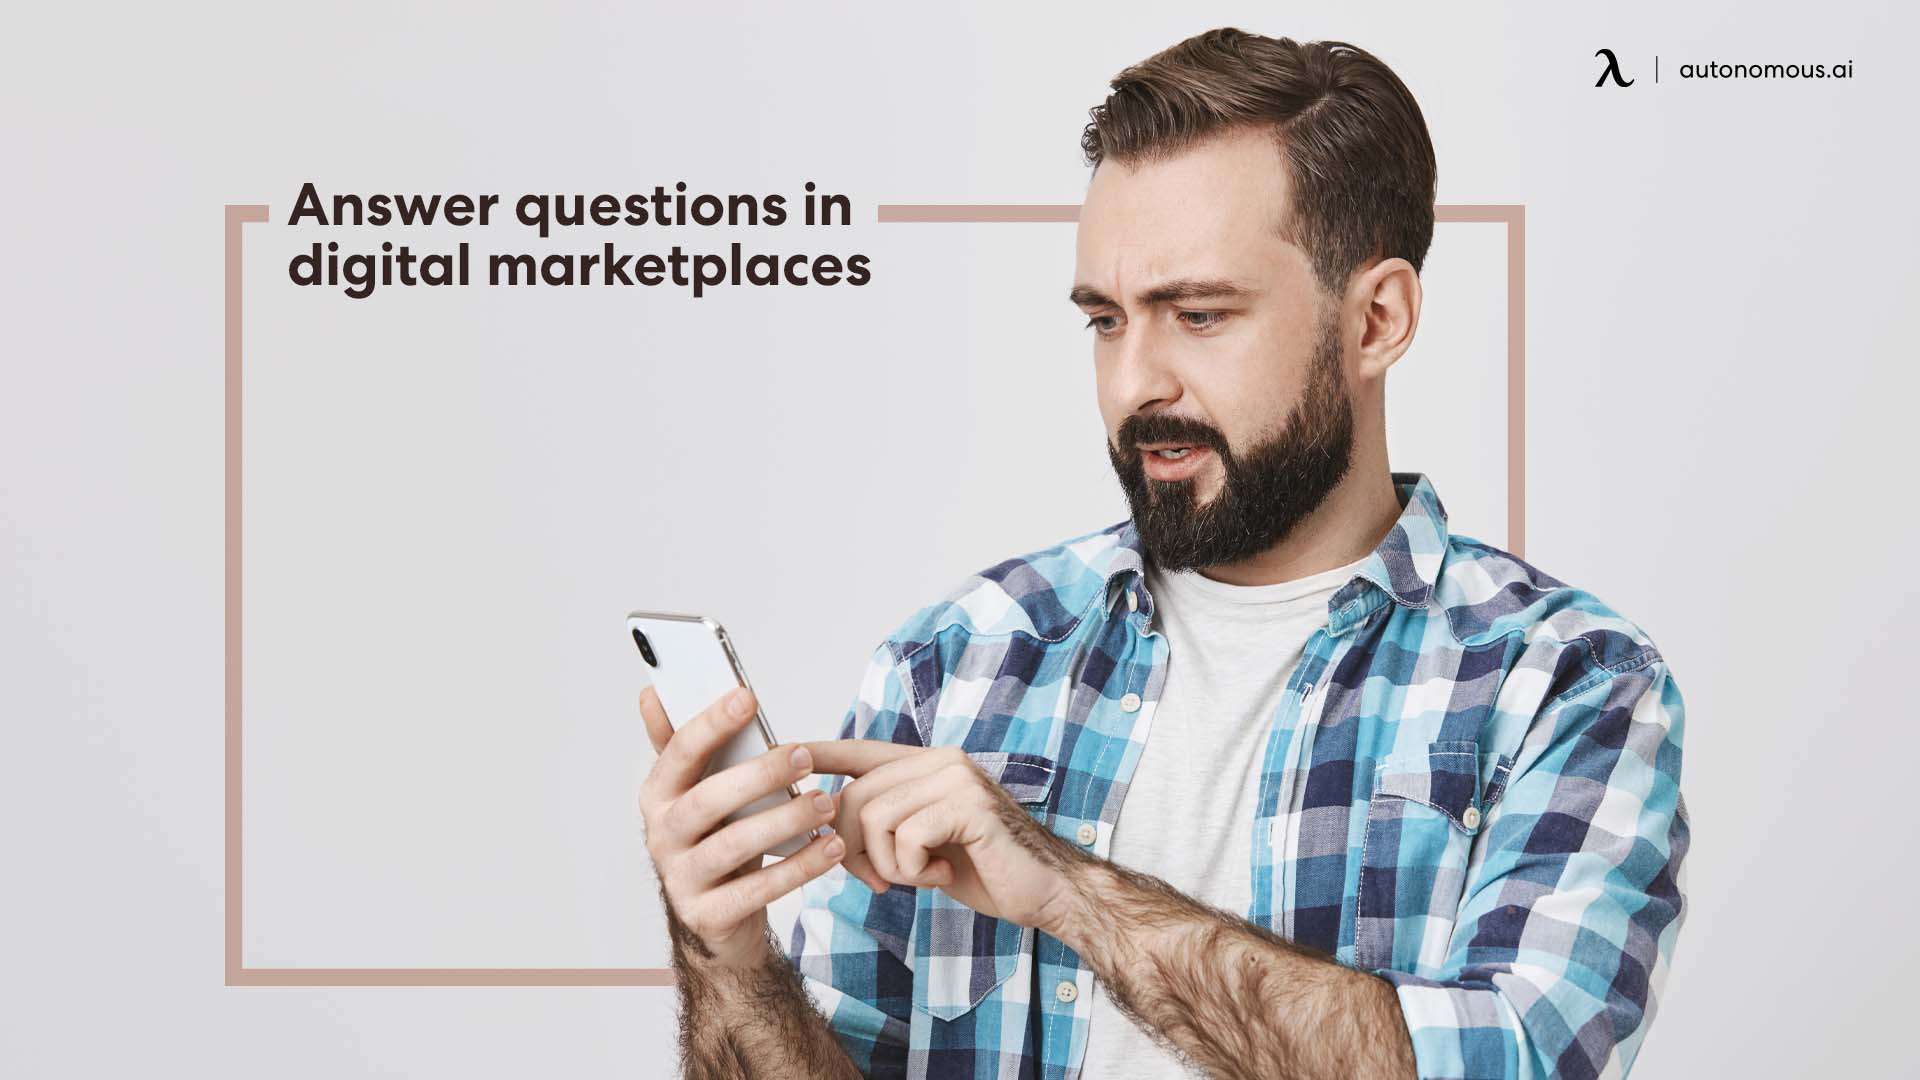 answer questions in digital marketplaces